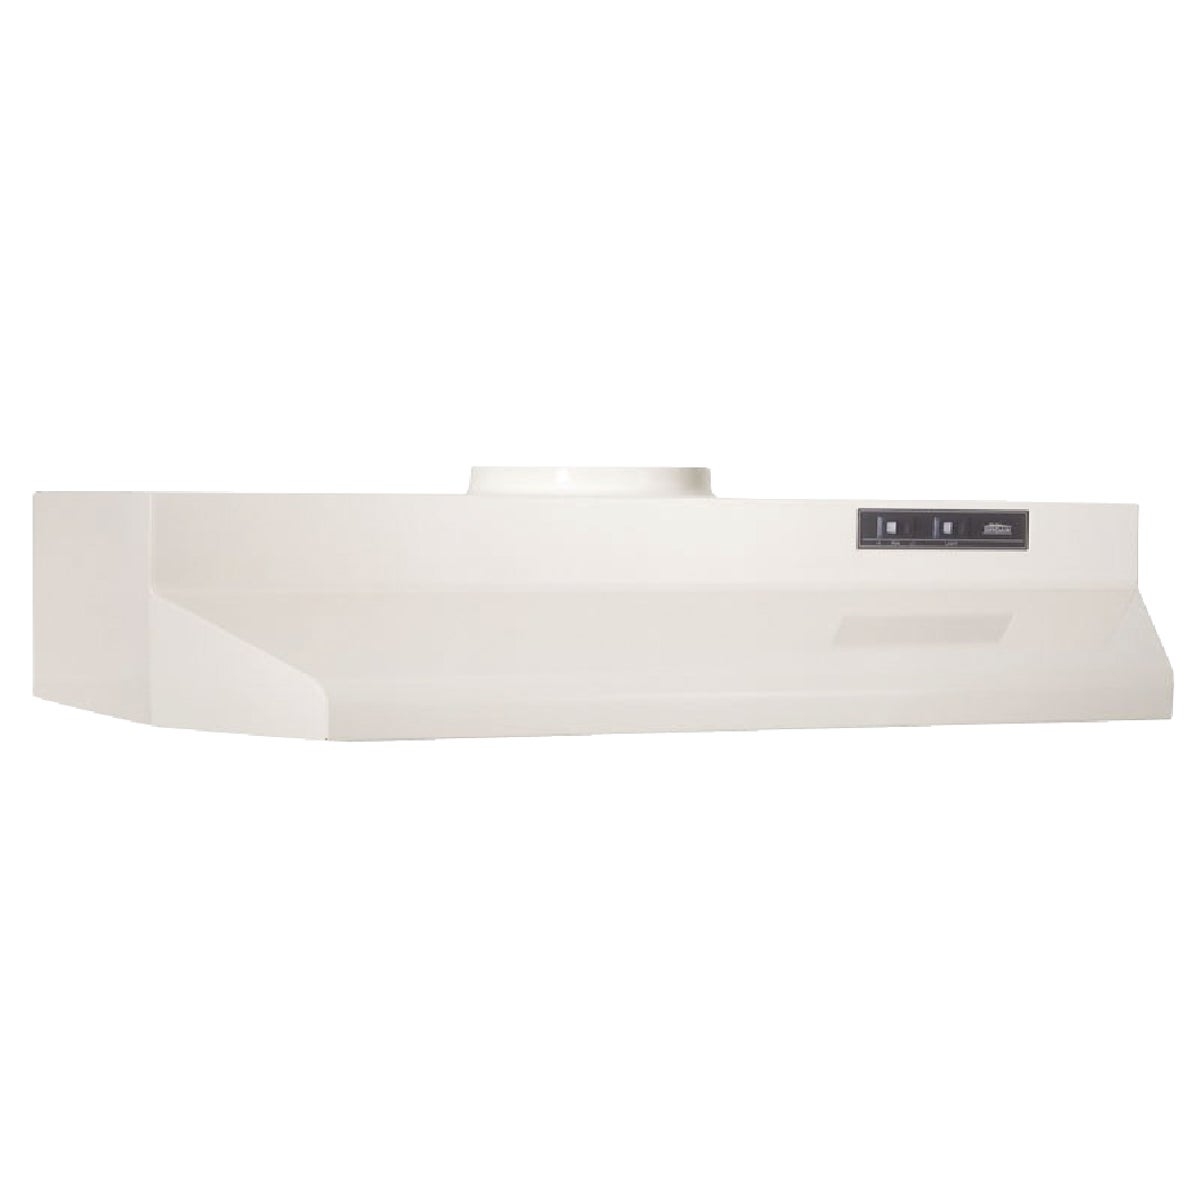 "36"" ALMOND CNV RANGEHOOD - F403608 by Broan Nutone"